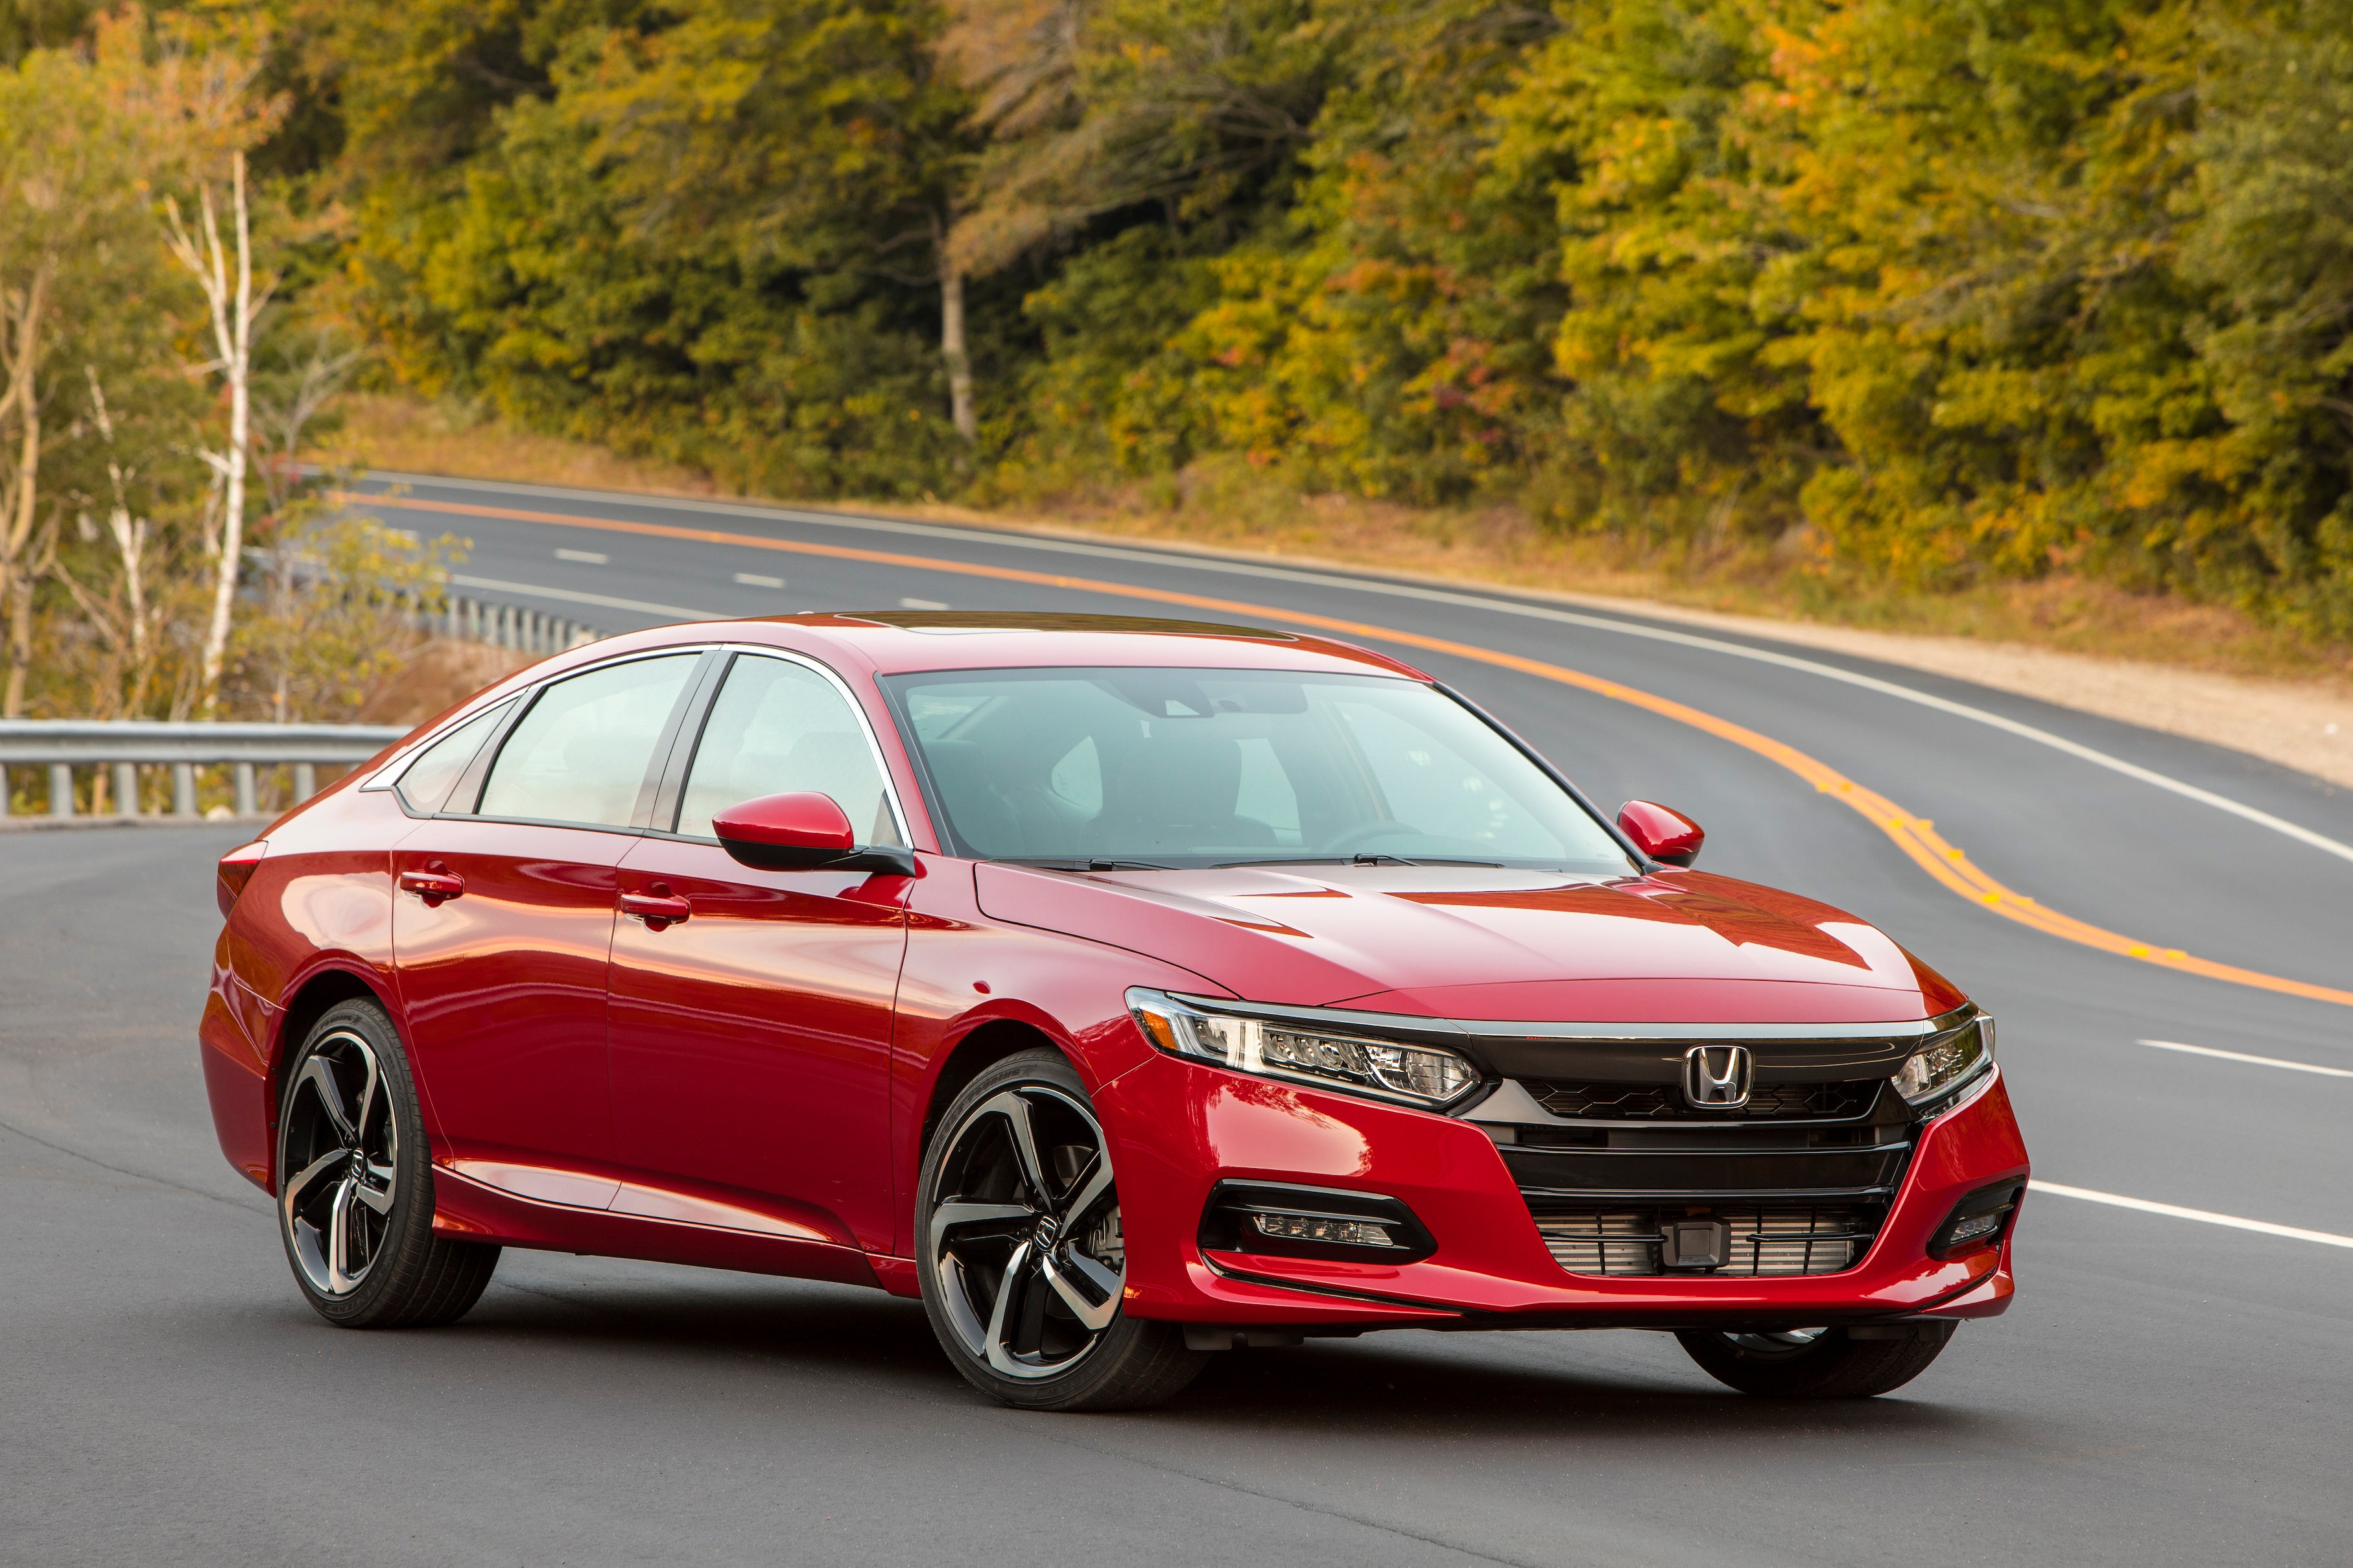 Honda Sharpens Its All-New 2018 Accord to Steal SUV Sales -- The Motley Fool